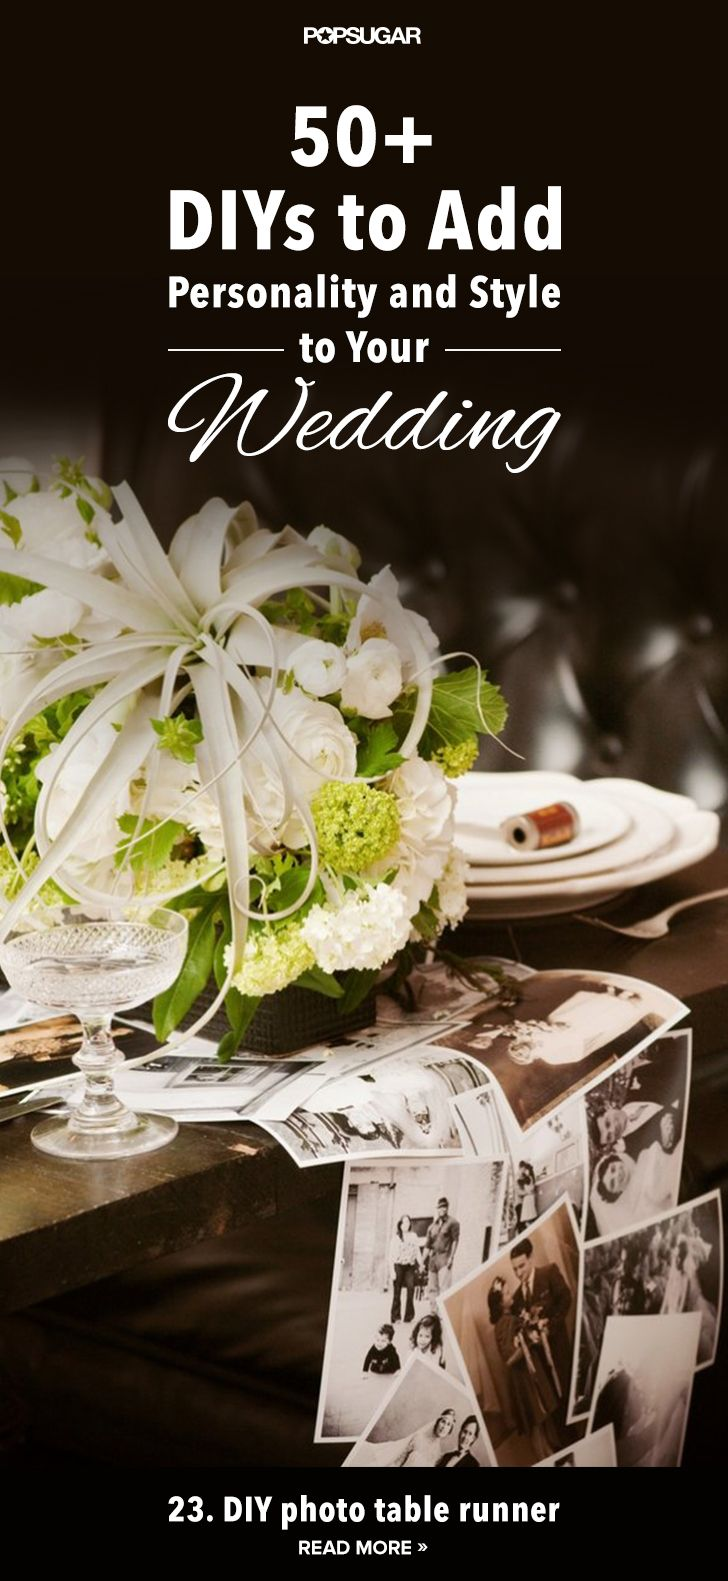 50+ DIYs to Add Personality and Style to Your Wedding but I think that some of these would be great for any occassion!